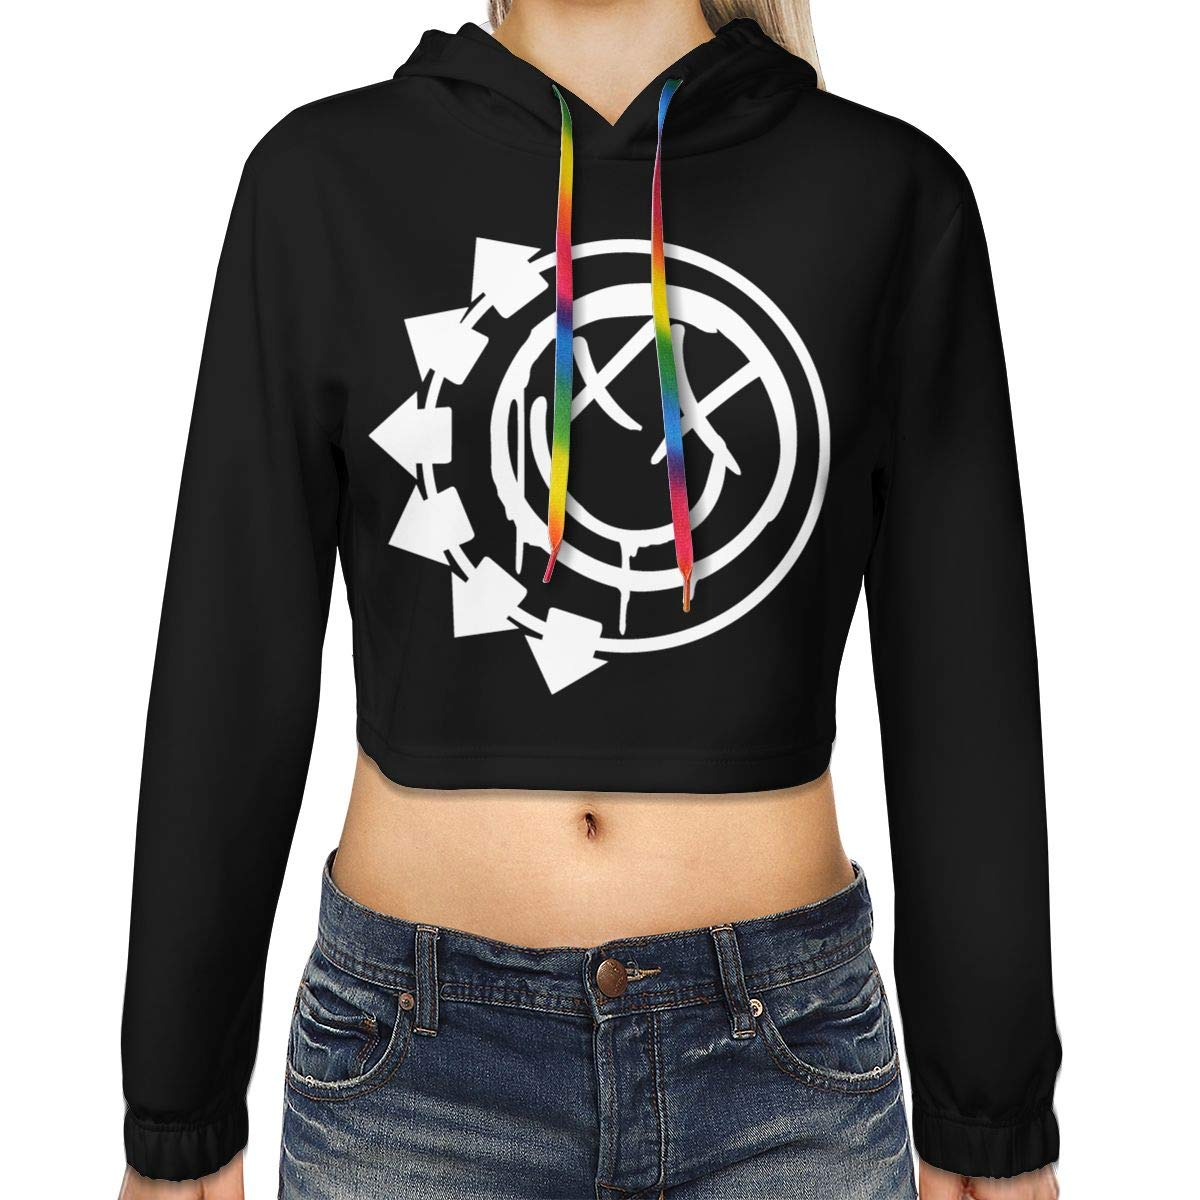 FASHION-TREND Women's Blink-182 Cropped Hoodie